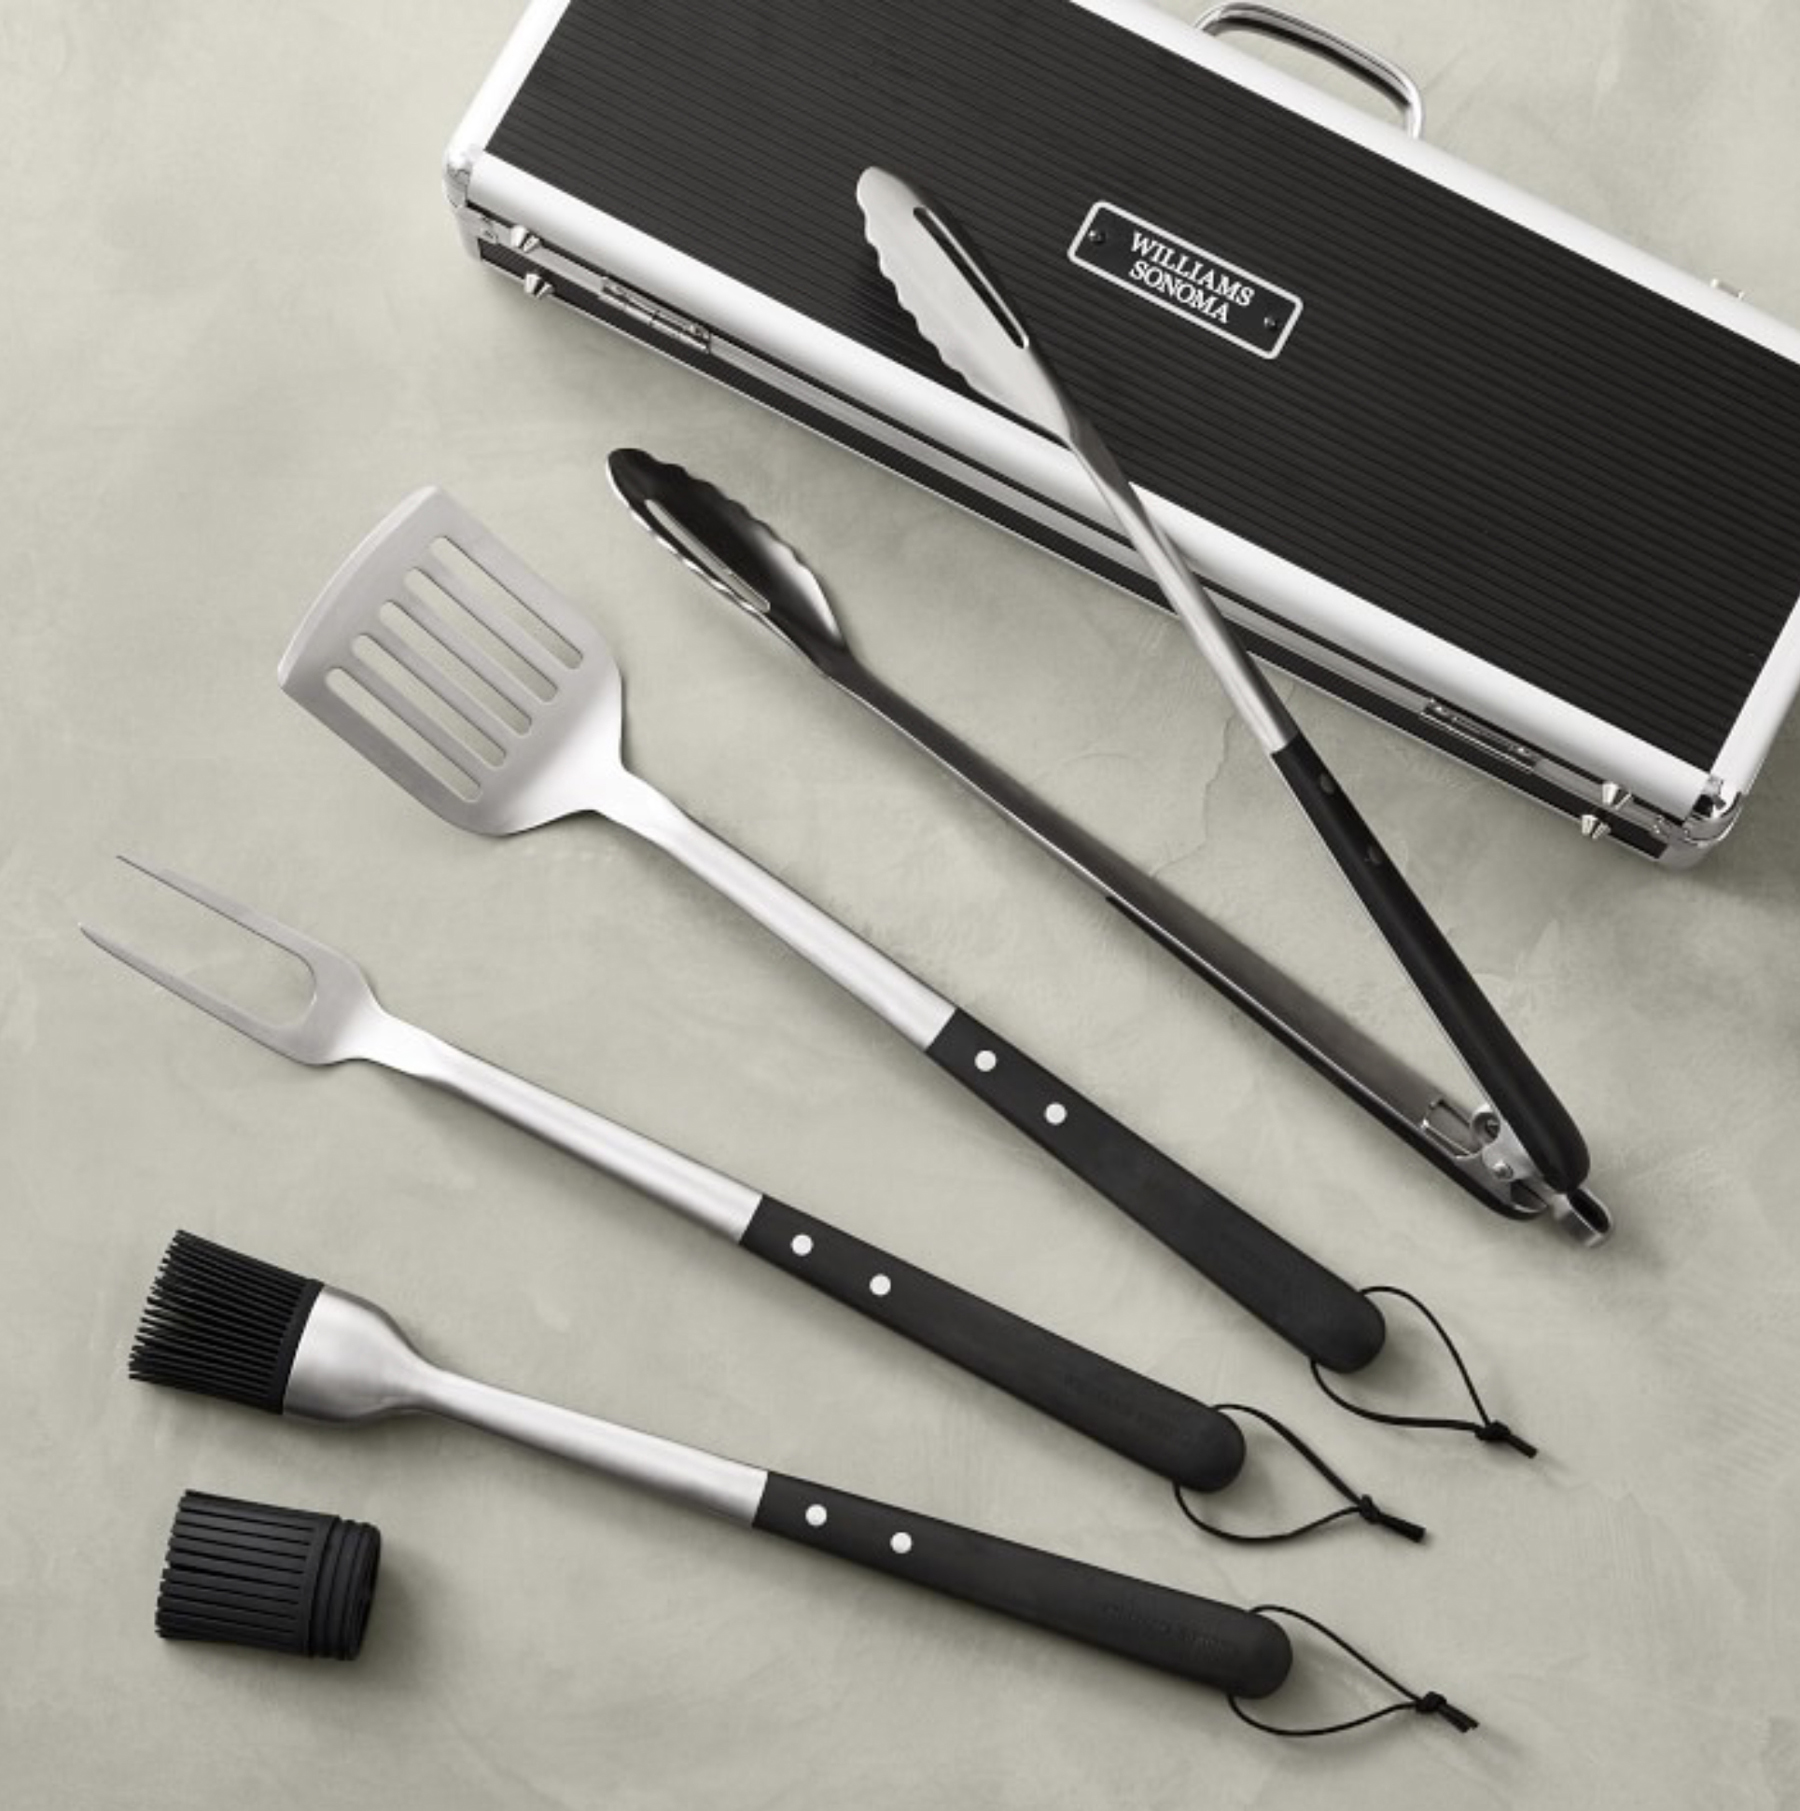 Williams-Sonoma Black-Handled Four-Piece BBQ Tool Set with Storage Case